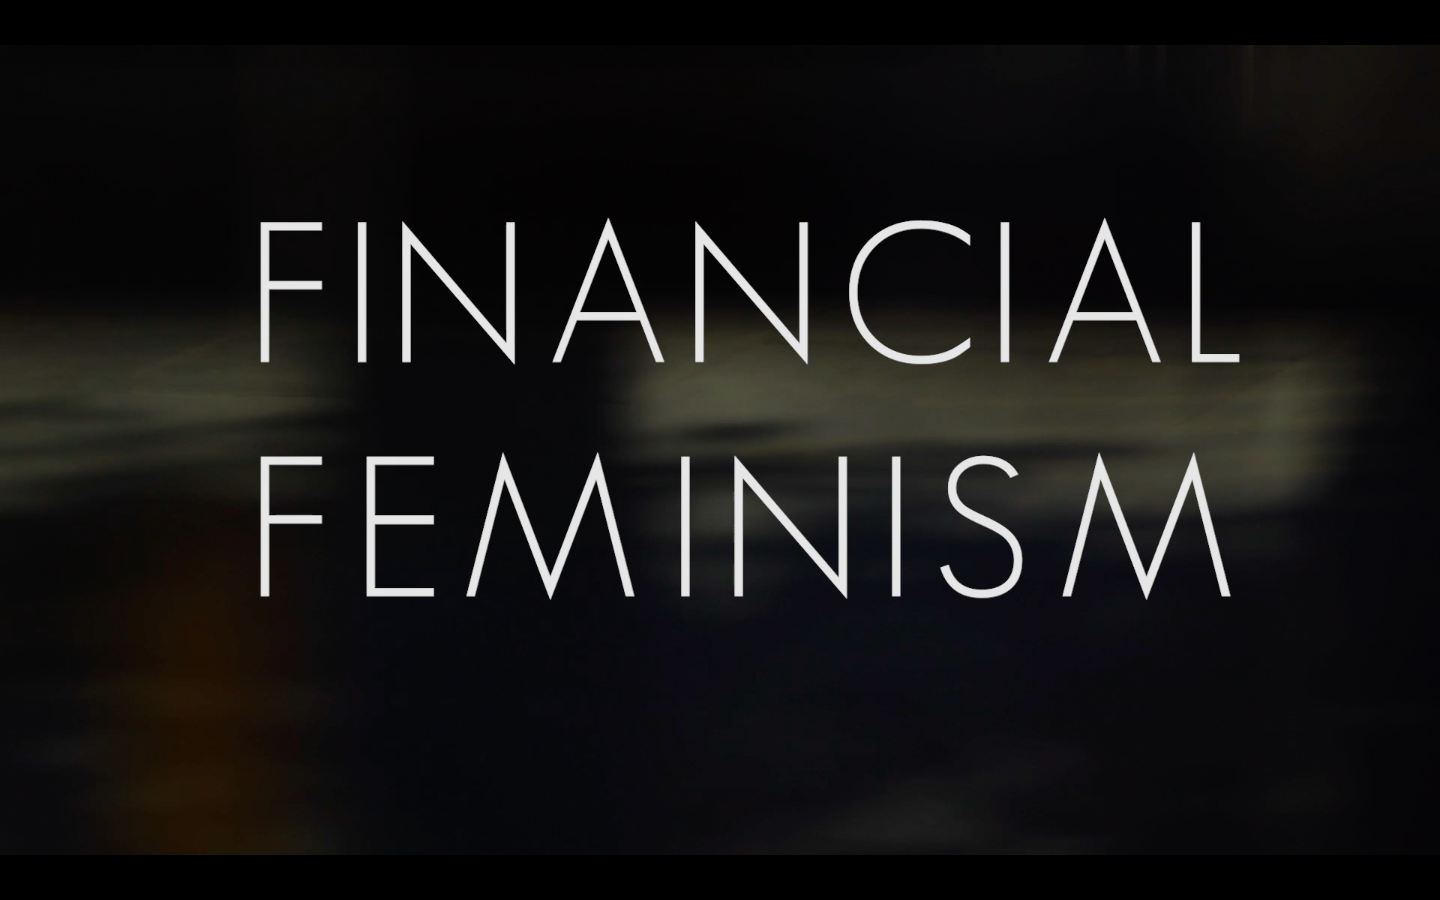 unbound.com - Financial Feminism: A Woman's Guide To Investing for a Sustainable Future